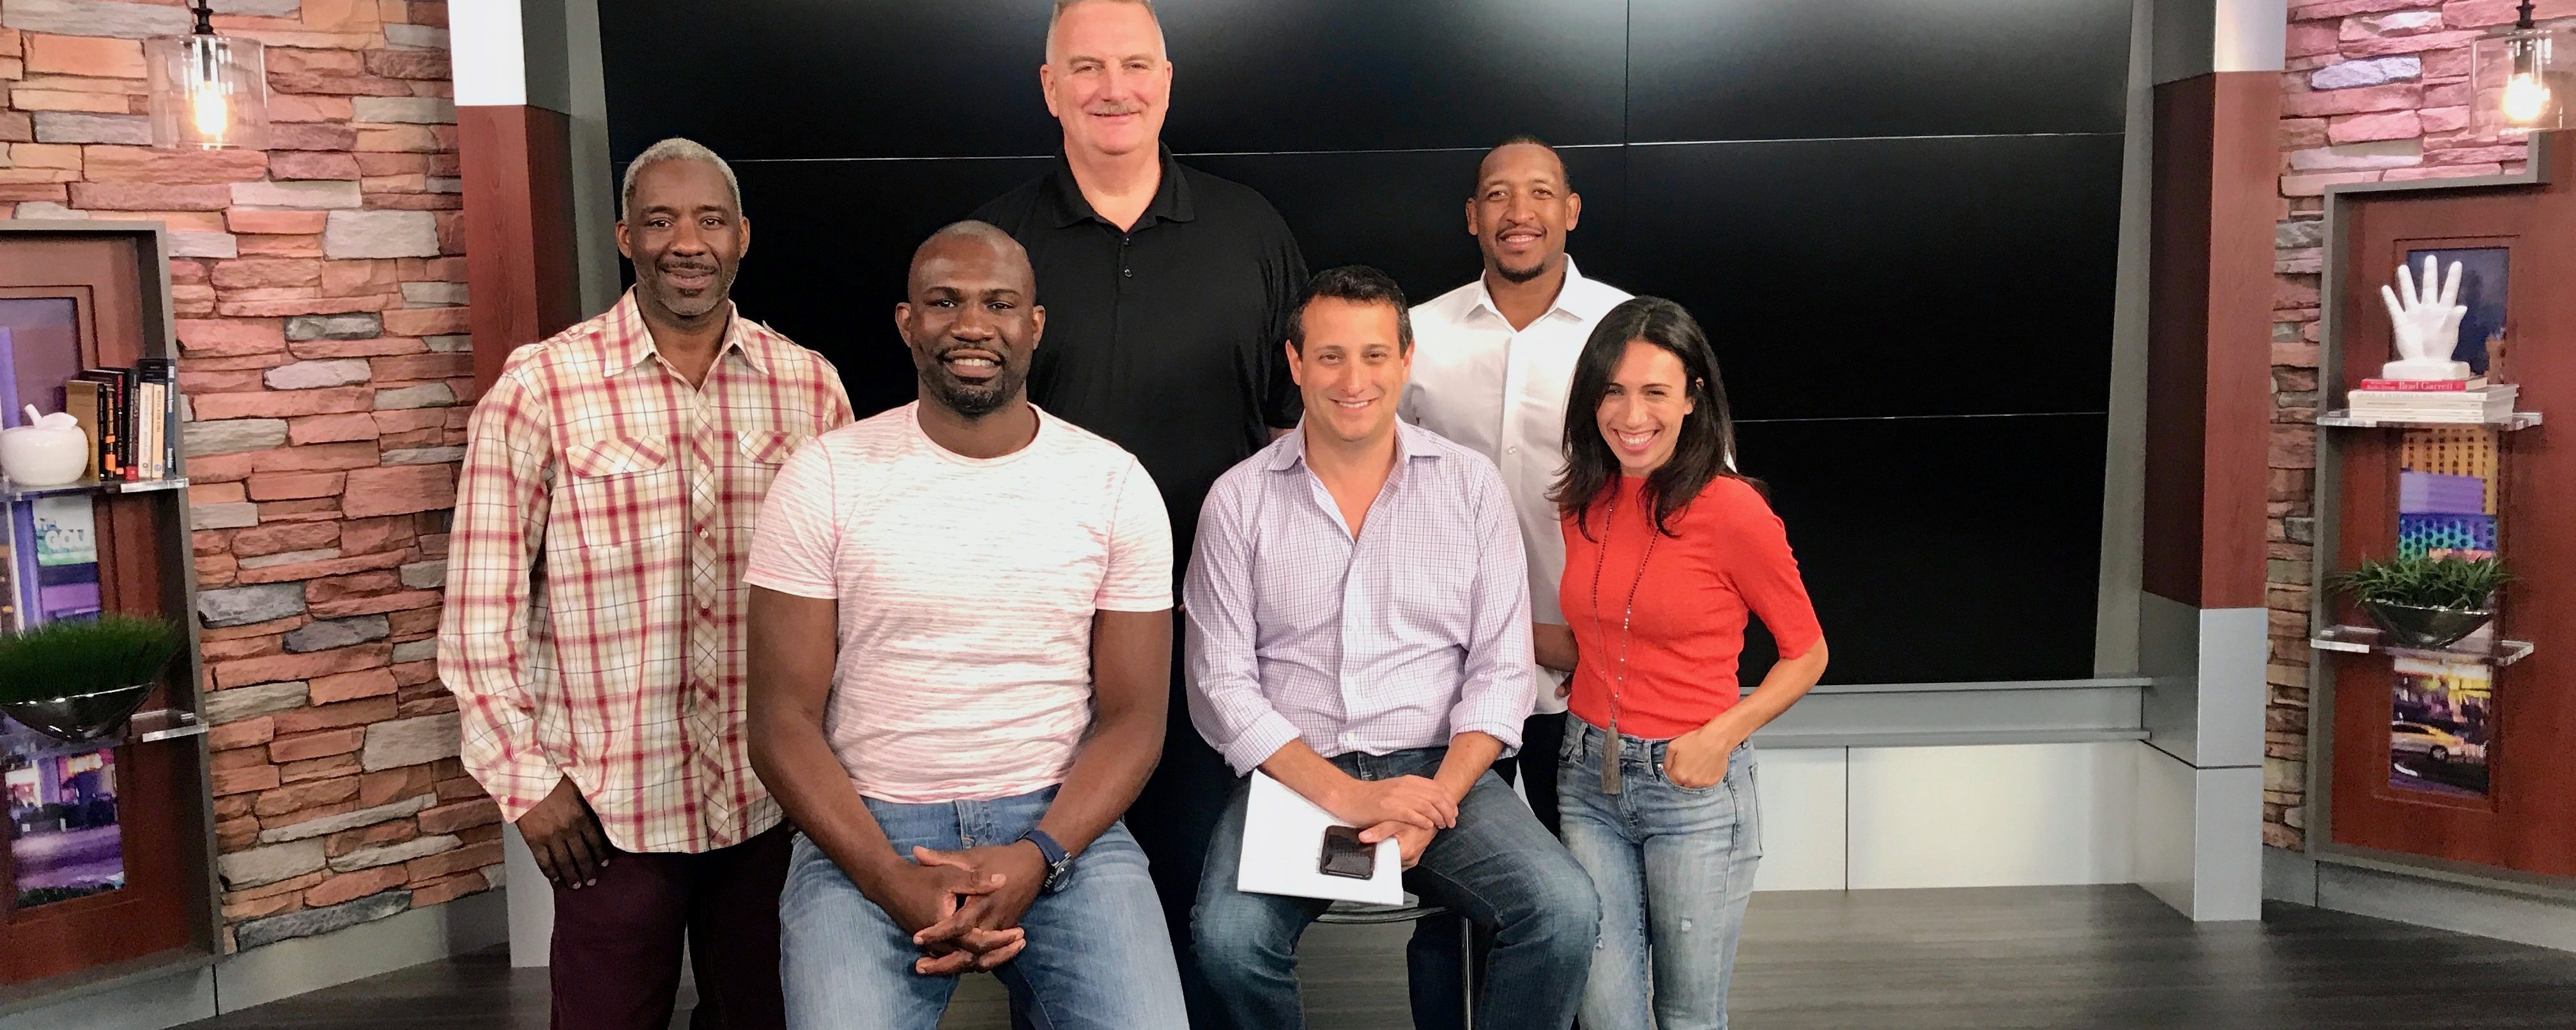 Former NBA players transition into broadcast through RMG Bootcamp